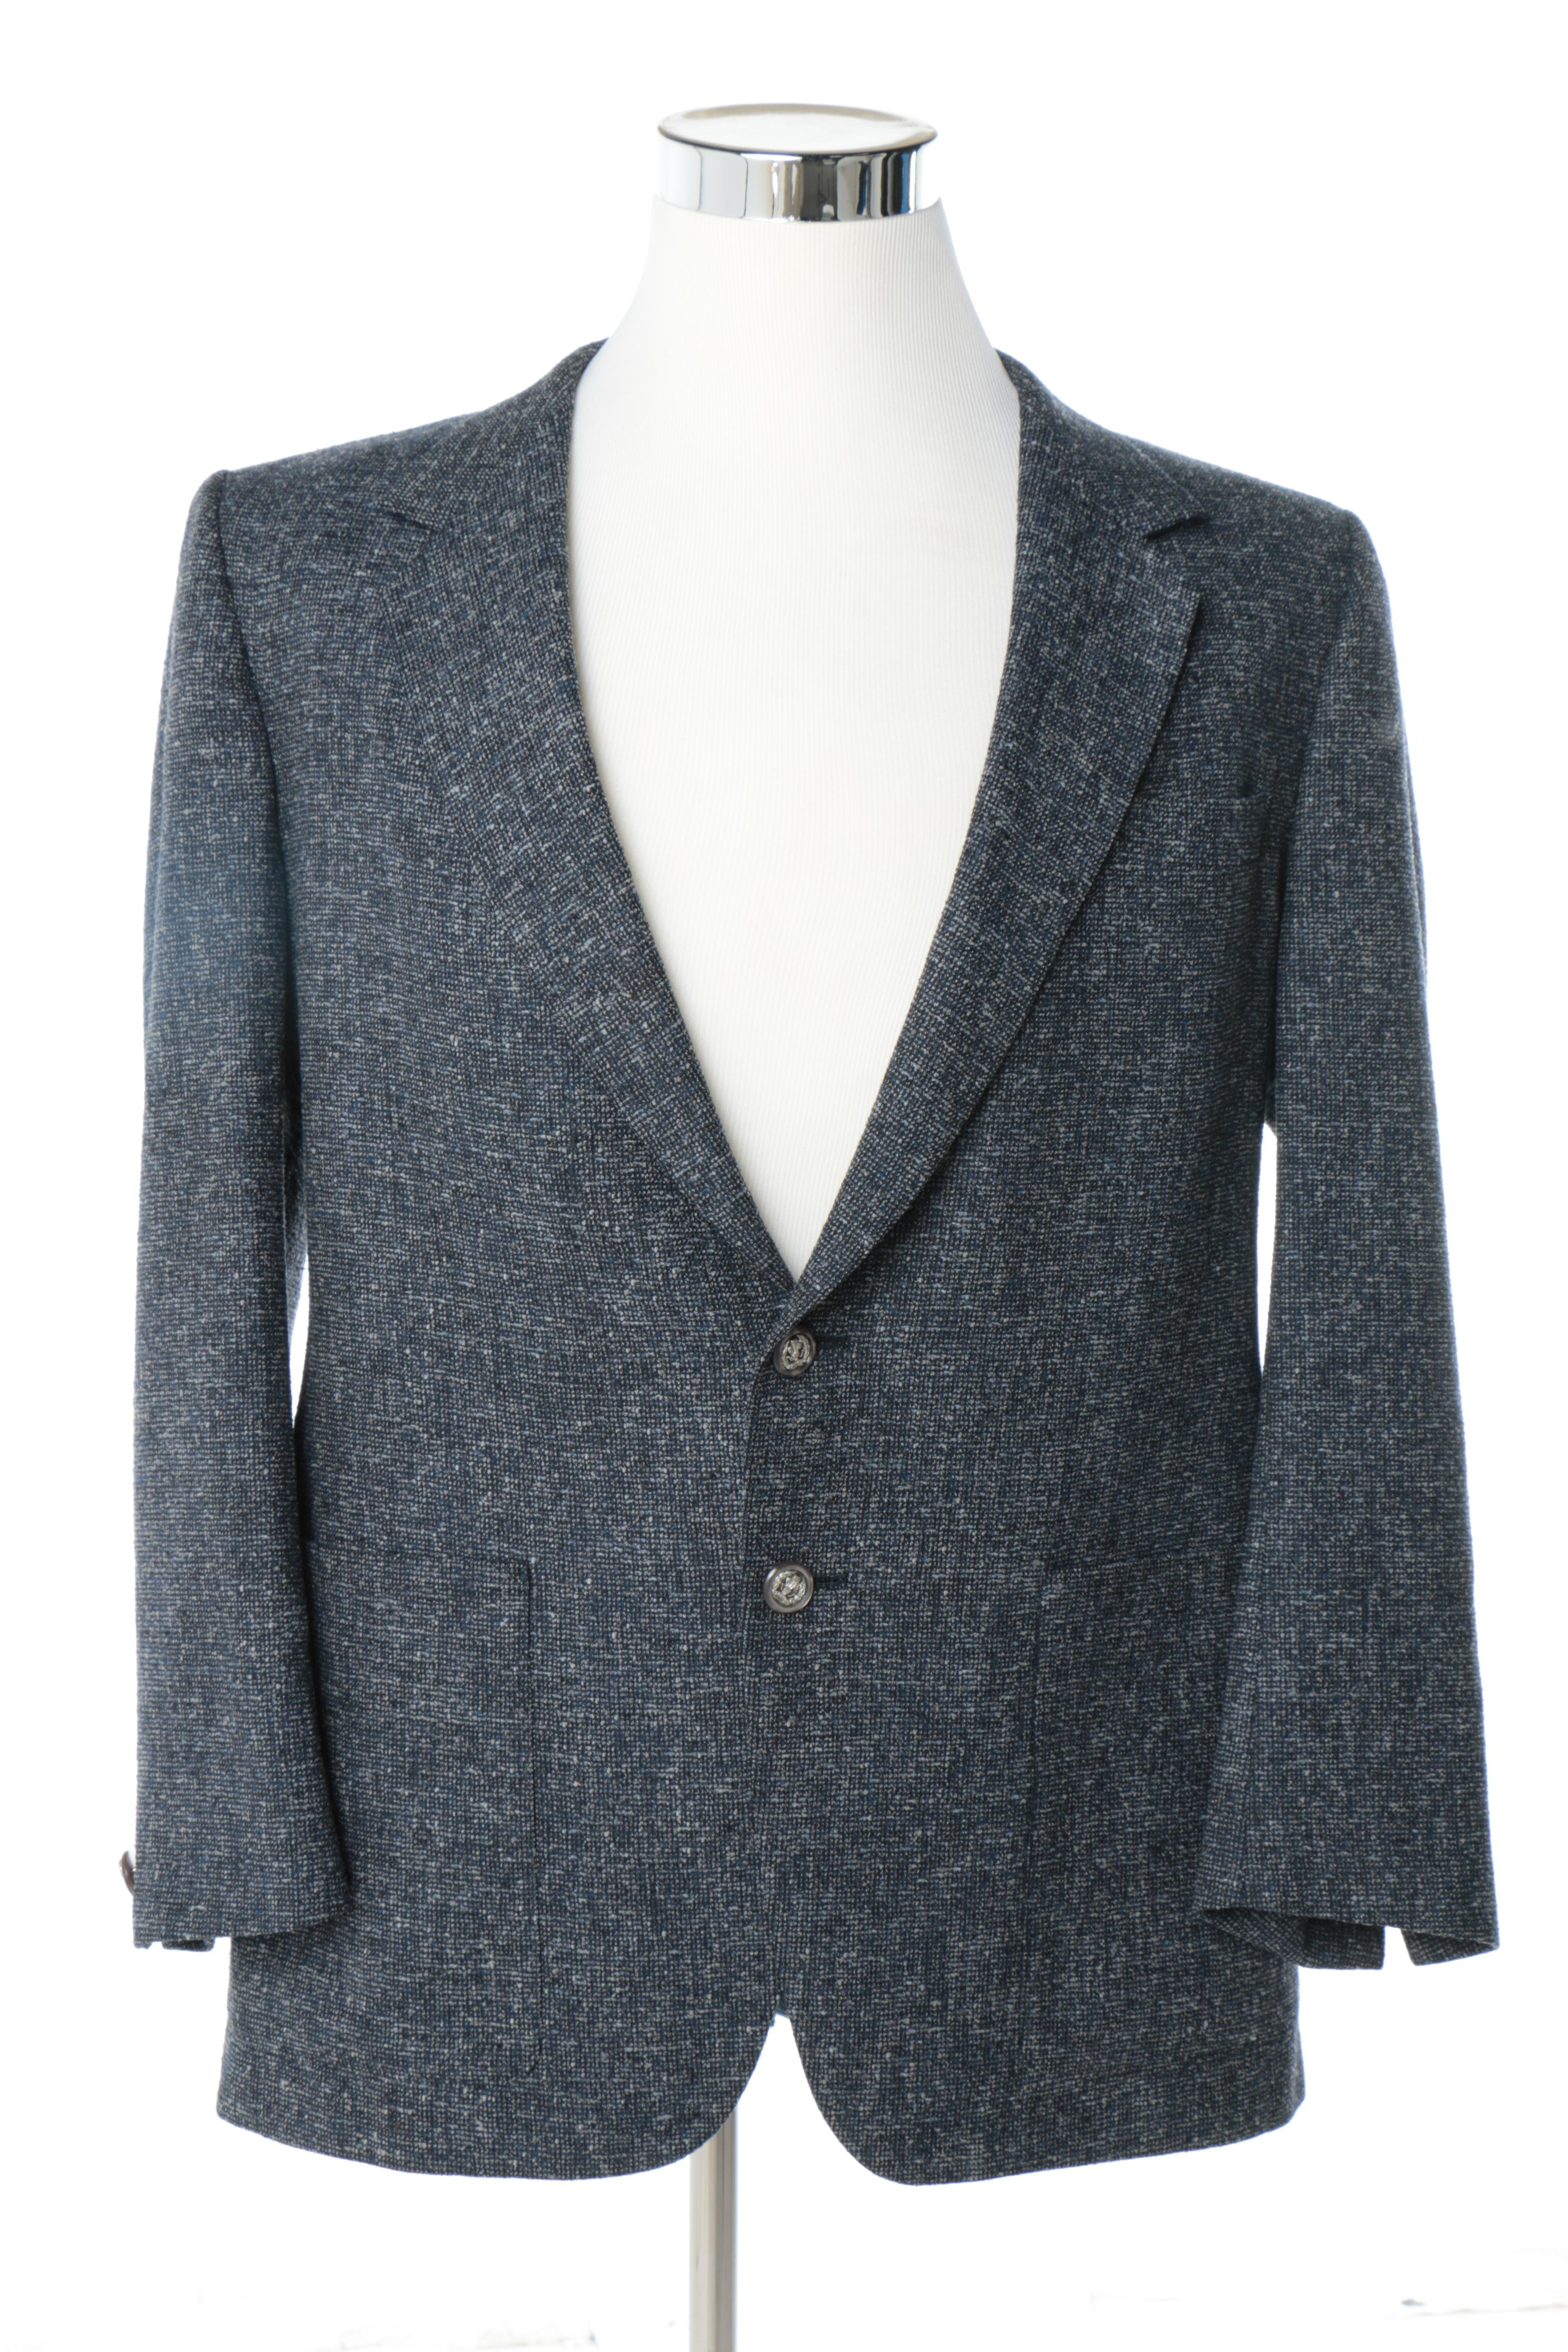 Louis Roth Blazer for Muse's Atlanta